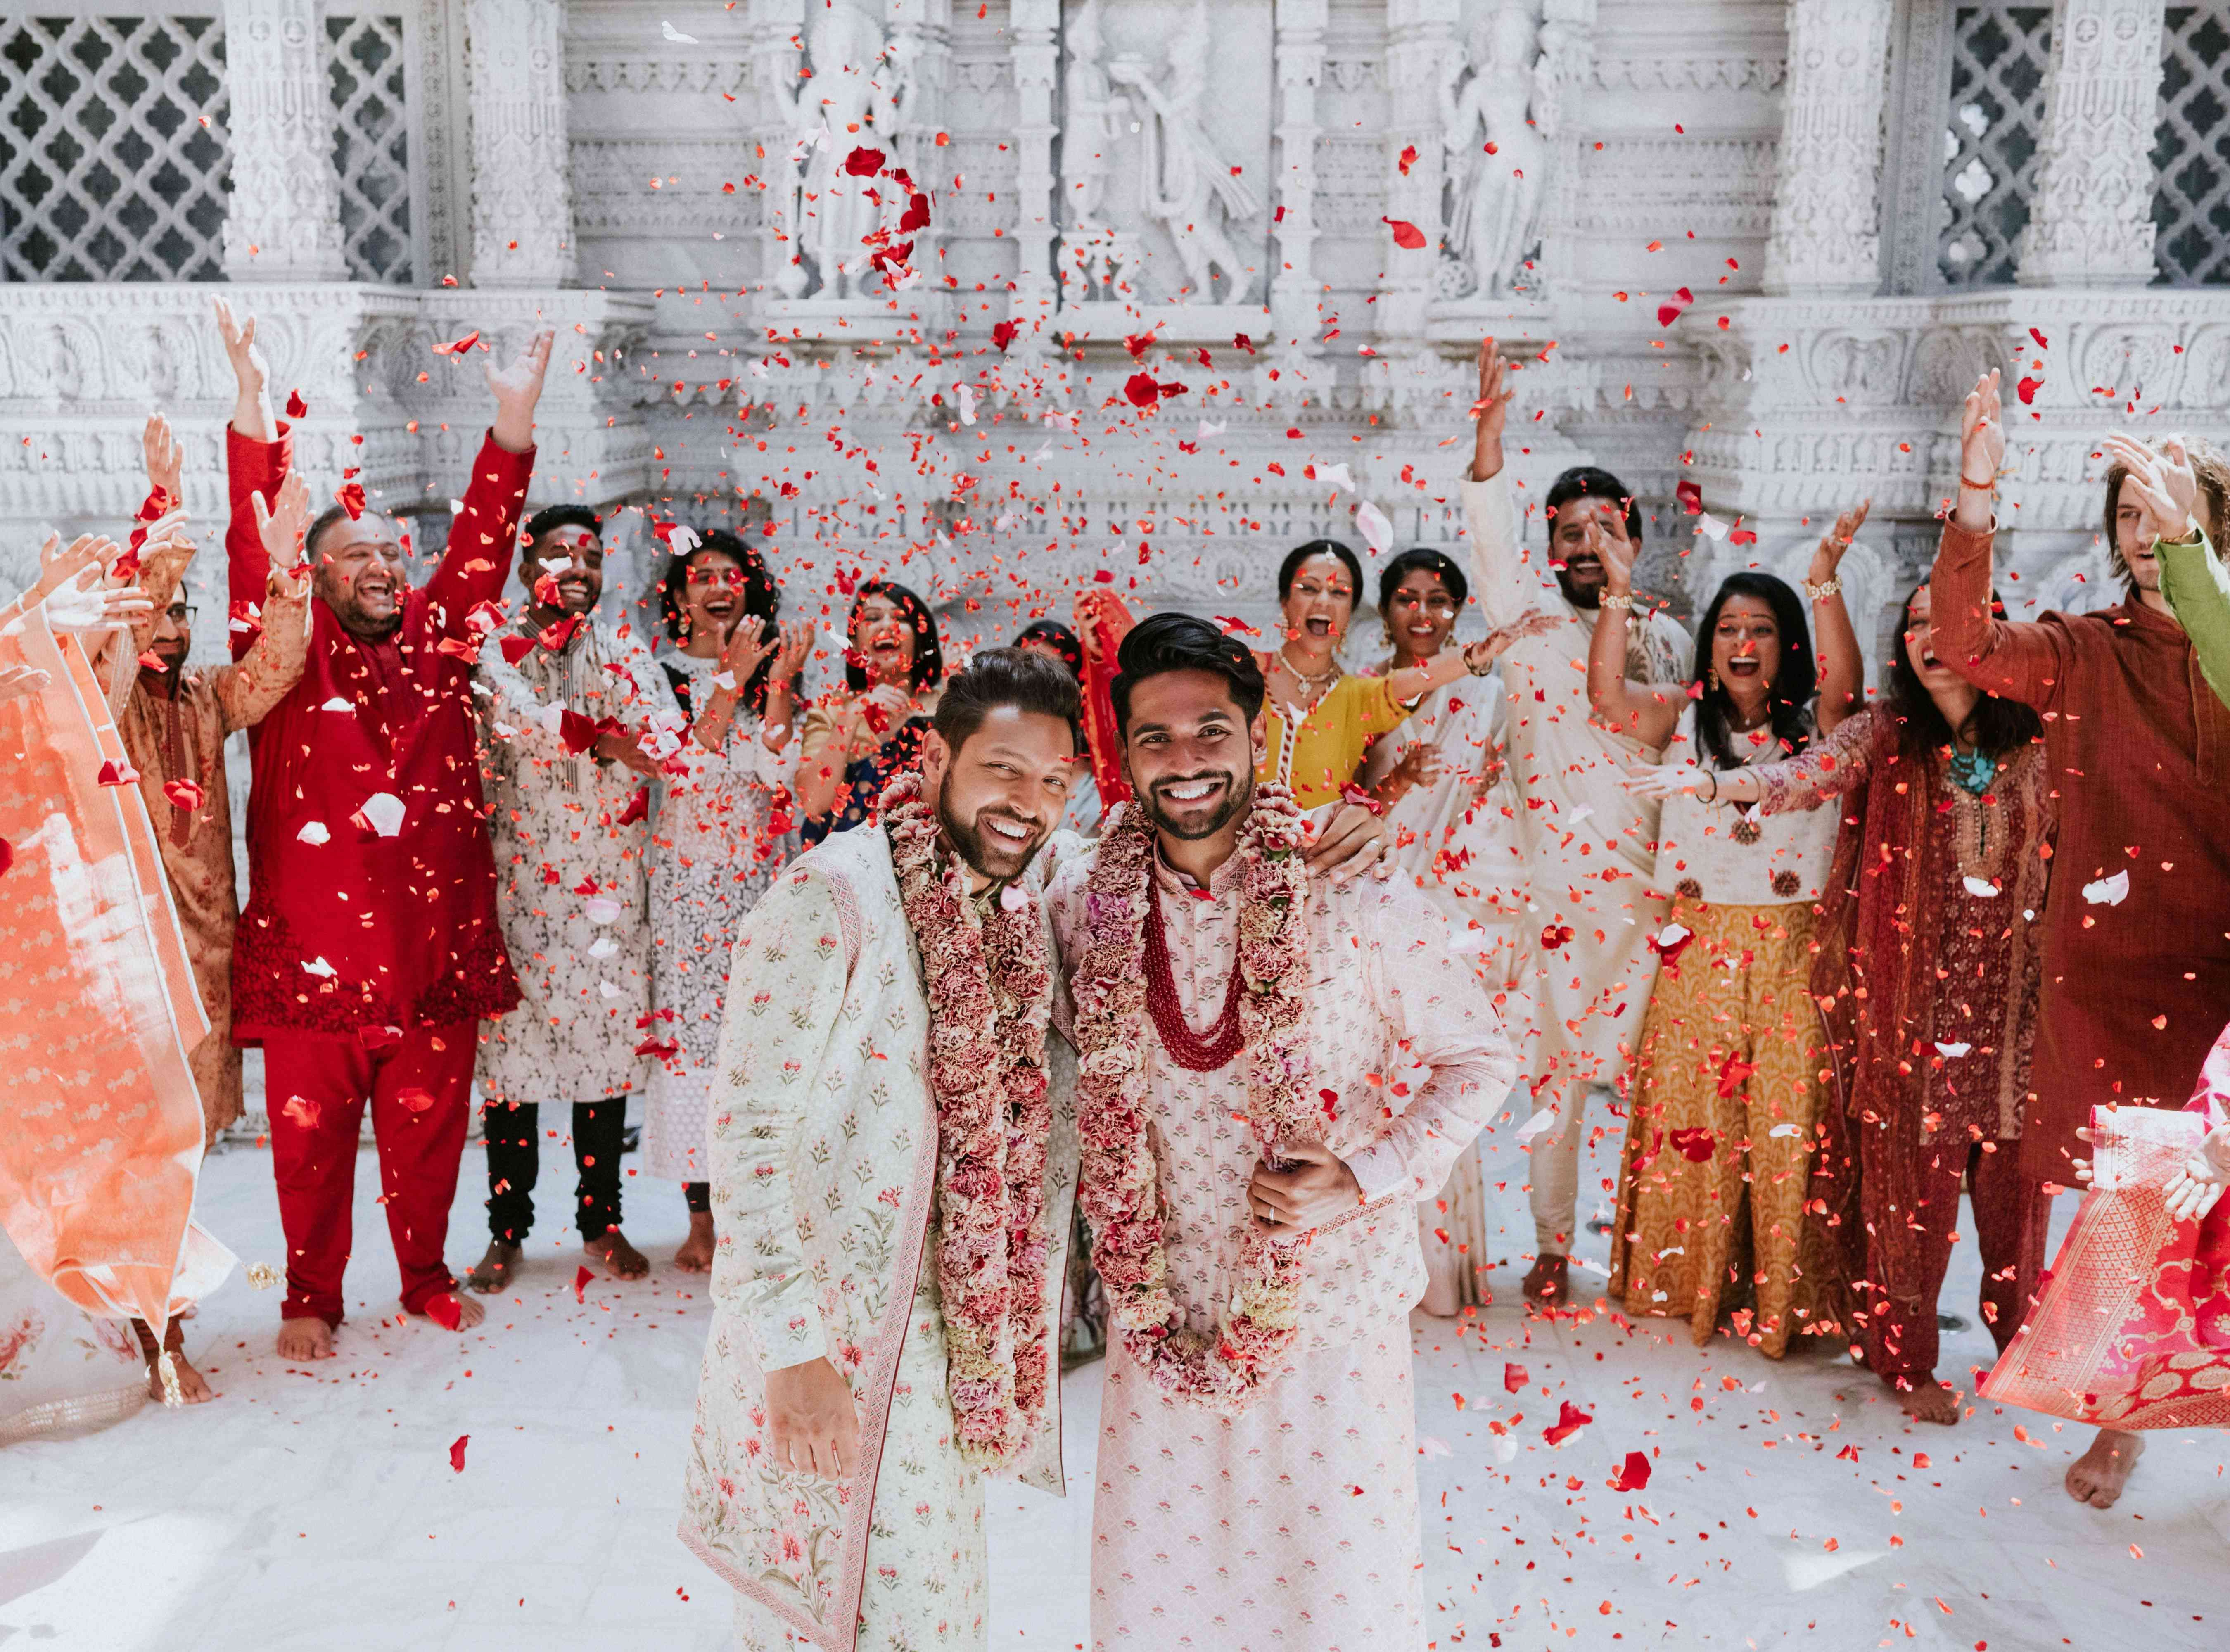 A gay Hindu couple at their wedding inside a temple while guests throw red petals in the air